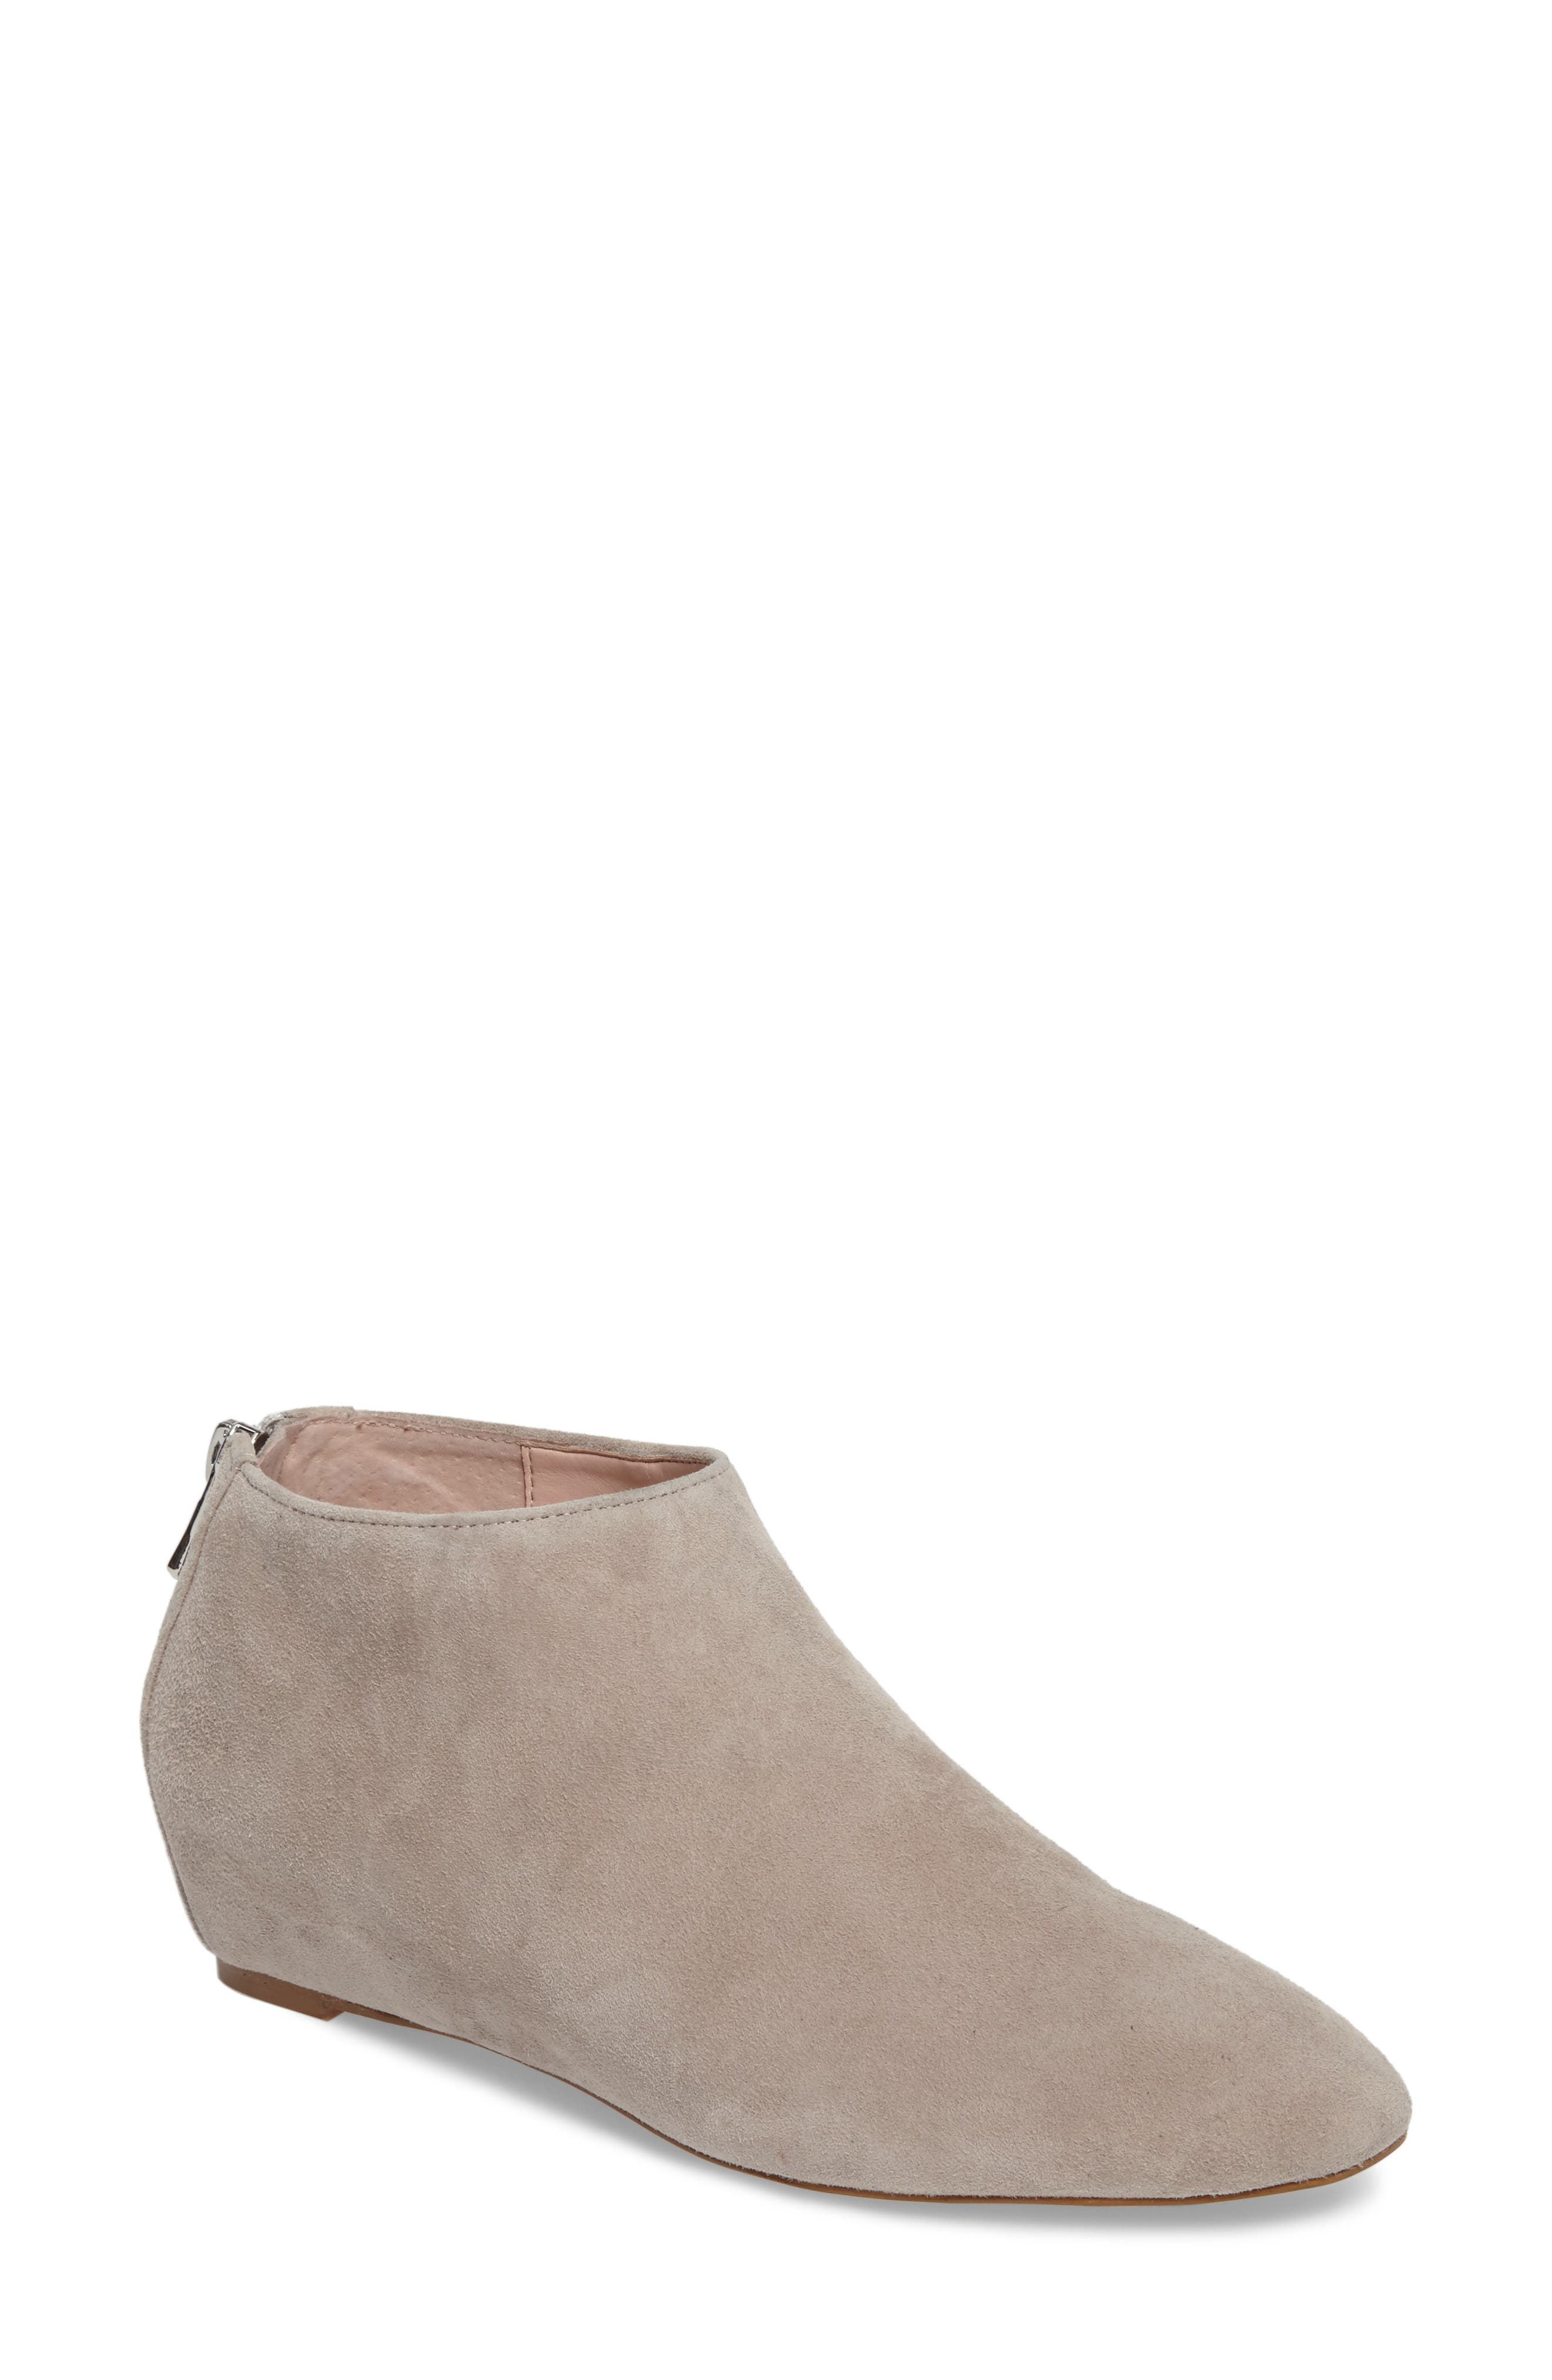 Alternate Image 1 Selected - Aves Les Filles Beatrice Ankle Boot (Women)